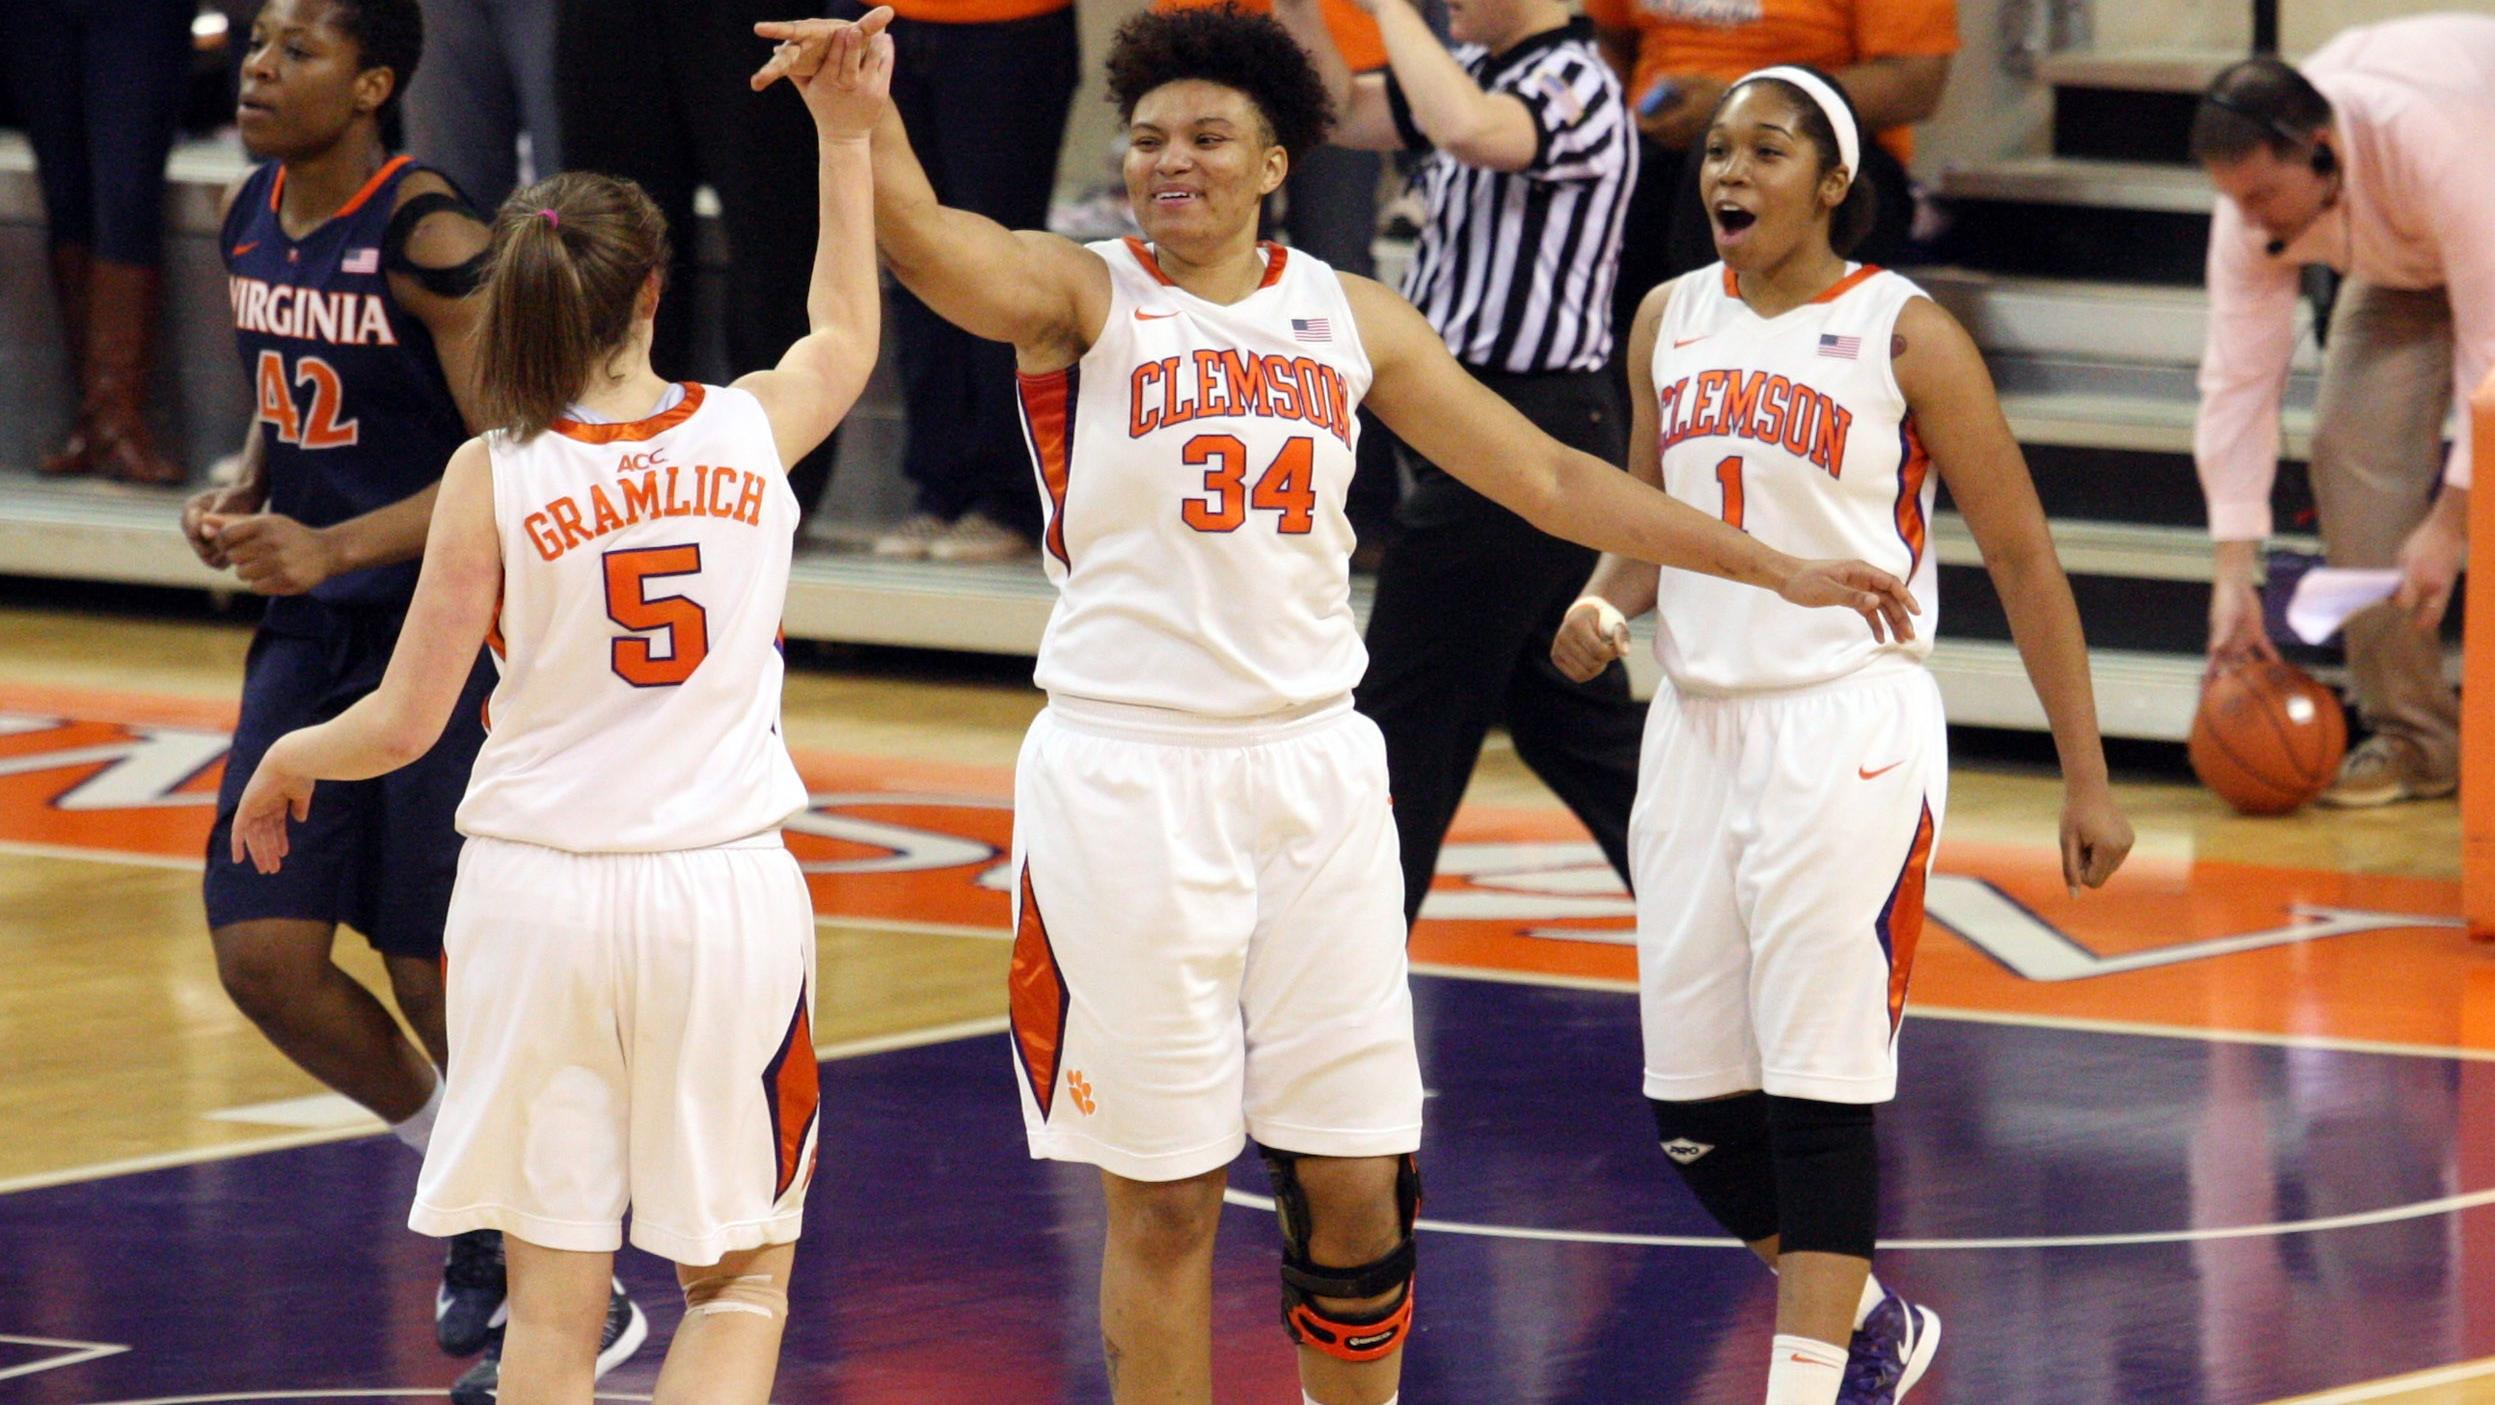 EXCLUSIVE: Lady Tigers Give Coleman Win for Her Birthday